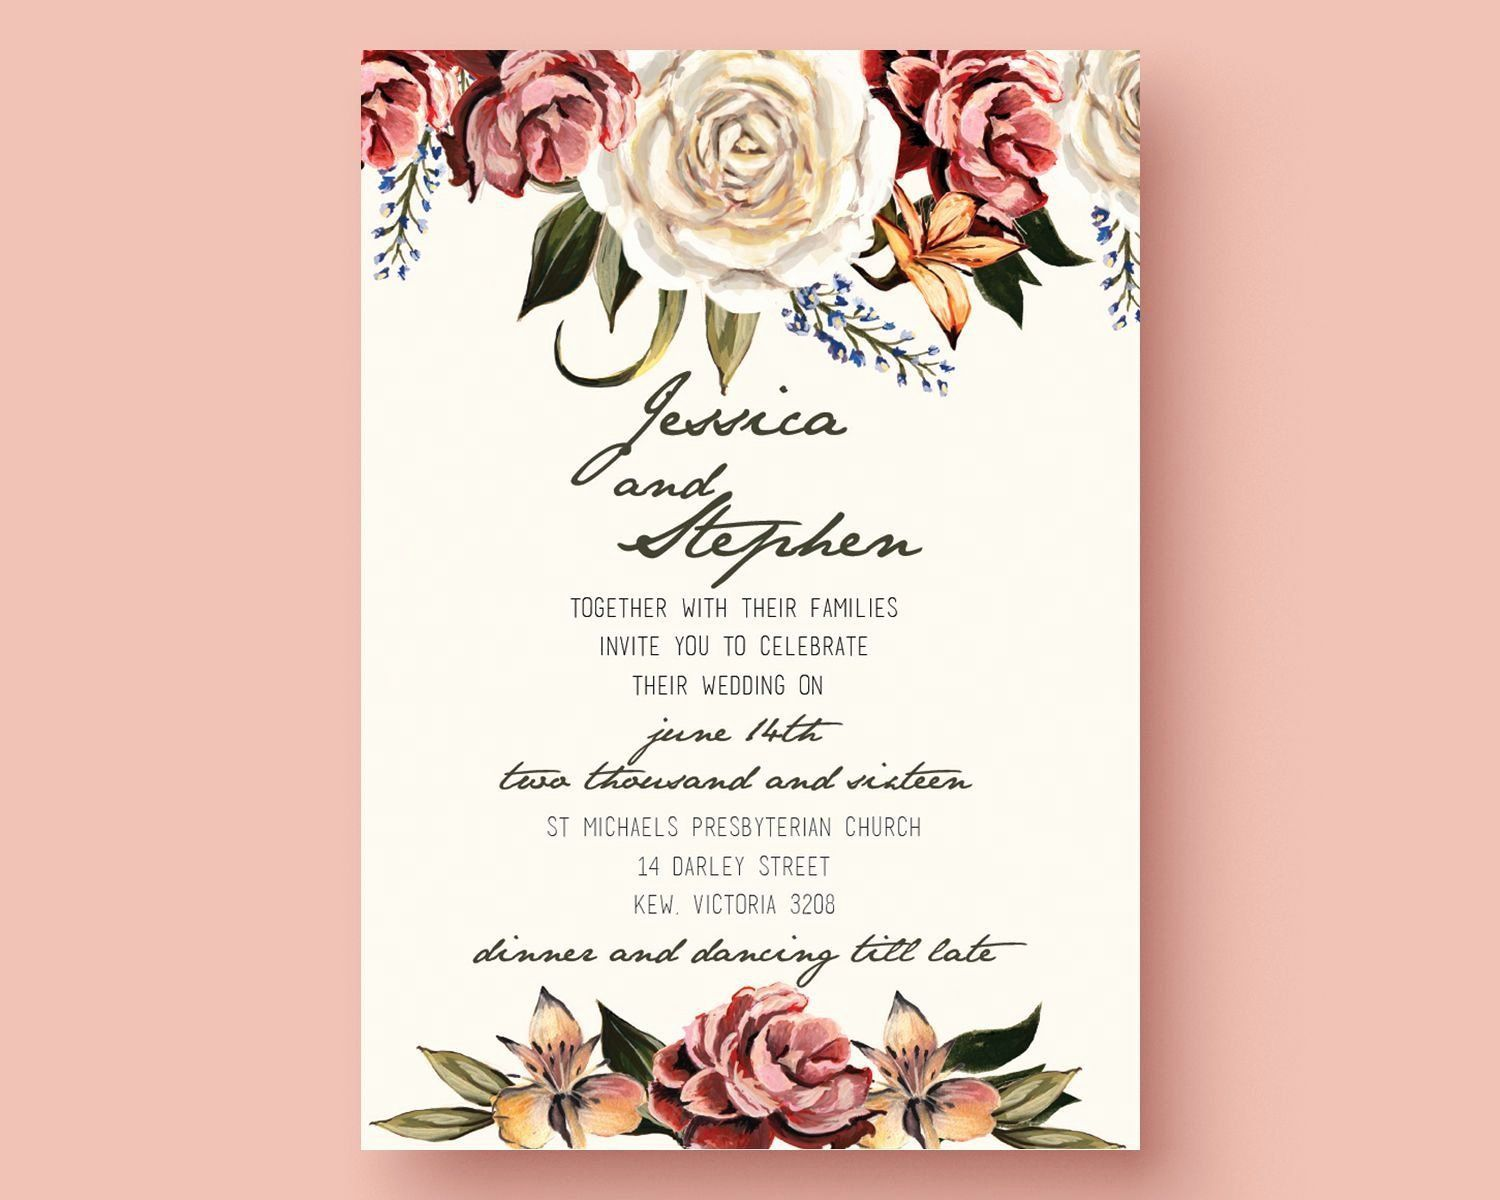 001 Wondrou Free Download Invitation Card Format Concept  Marriage In Word Psd WeddingFull